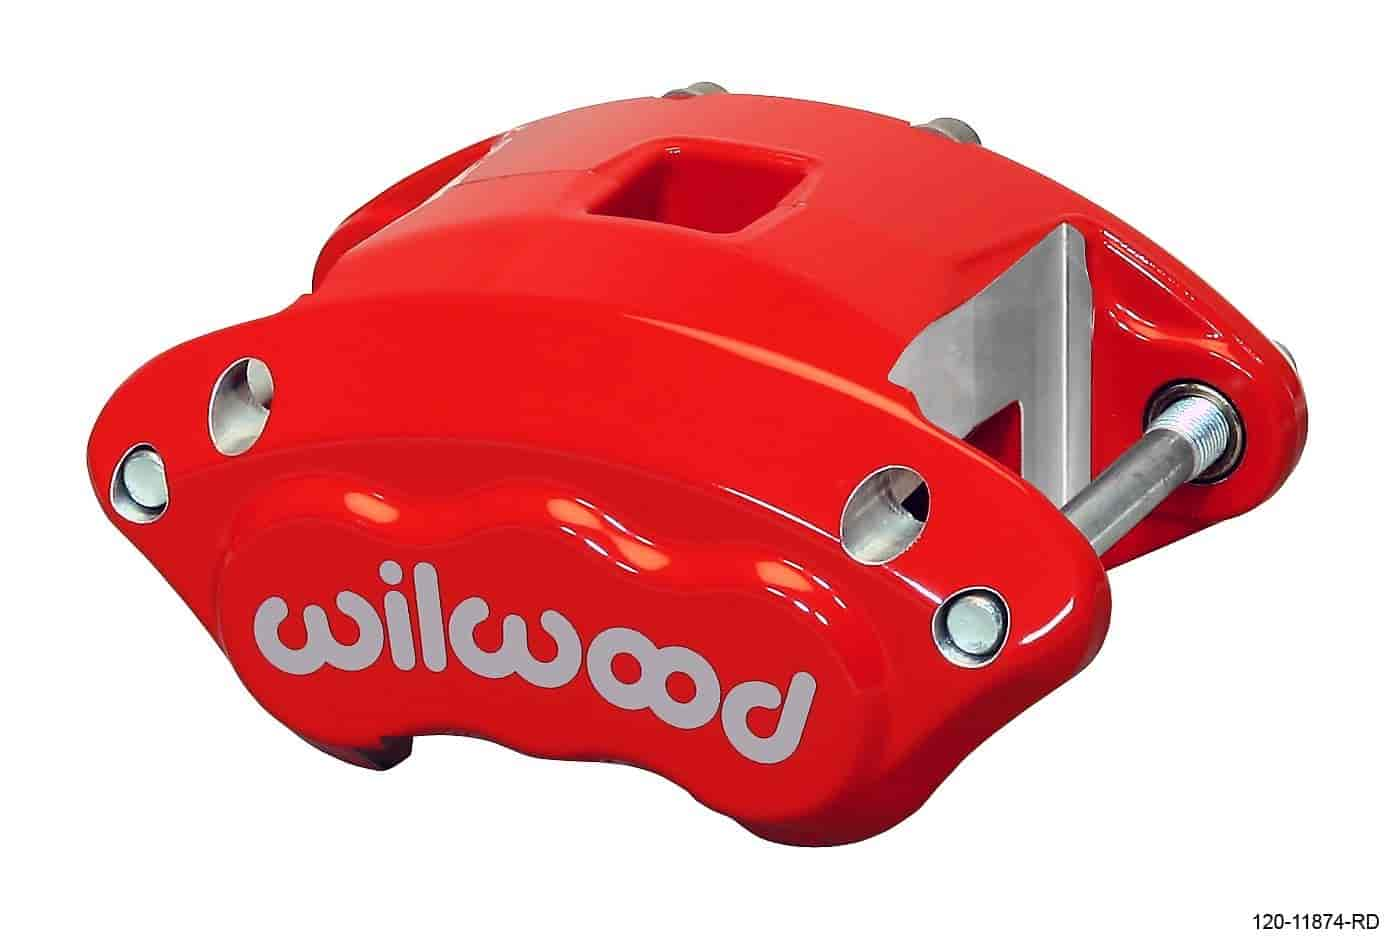 Wilwood 120-11874-RD - Wilwood D154 Single & Dual Piston Floater Calipers